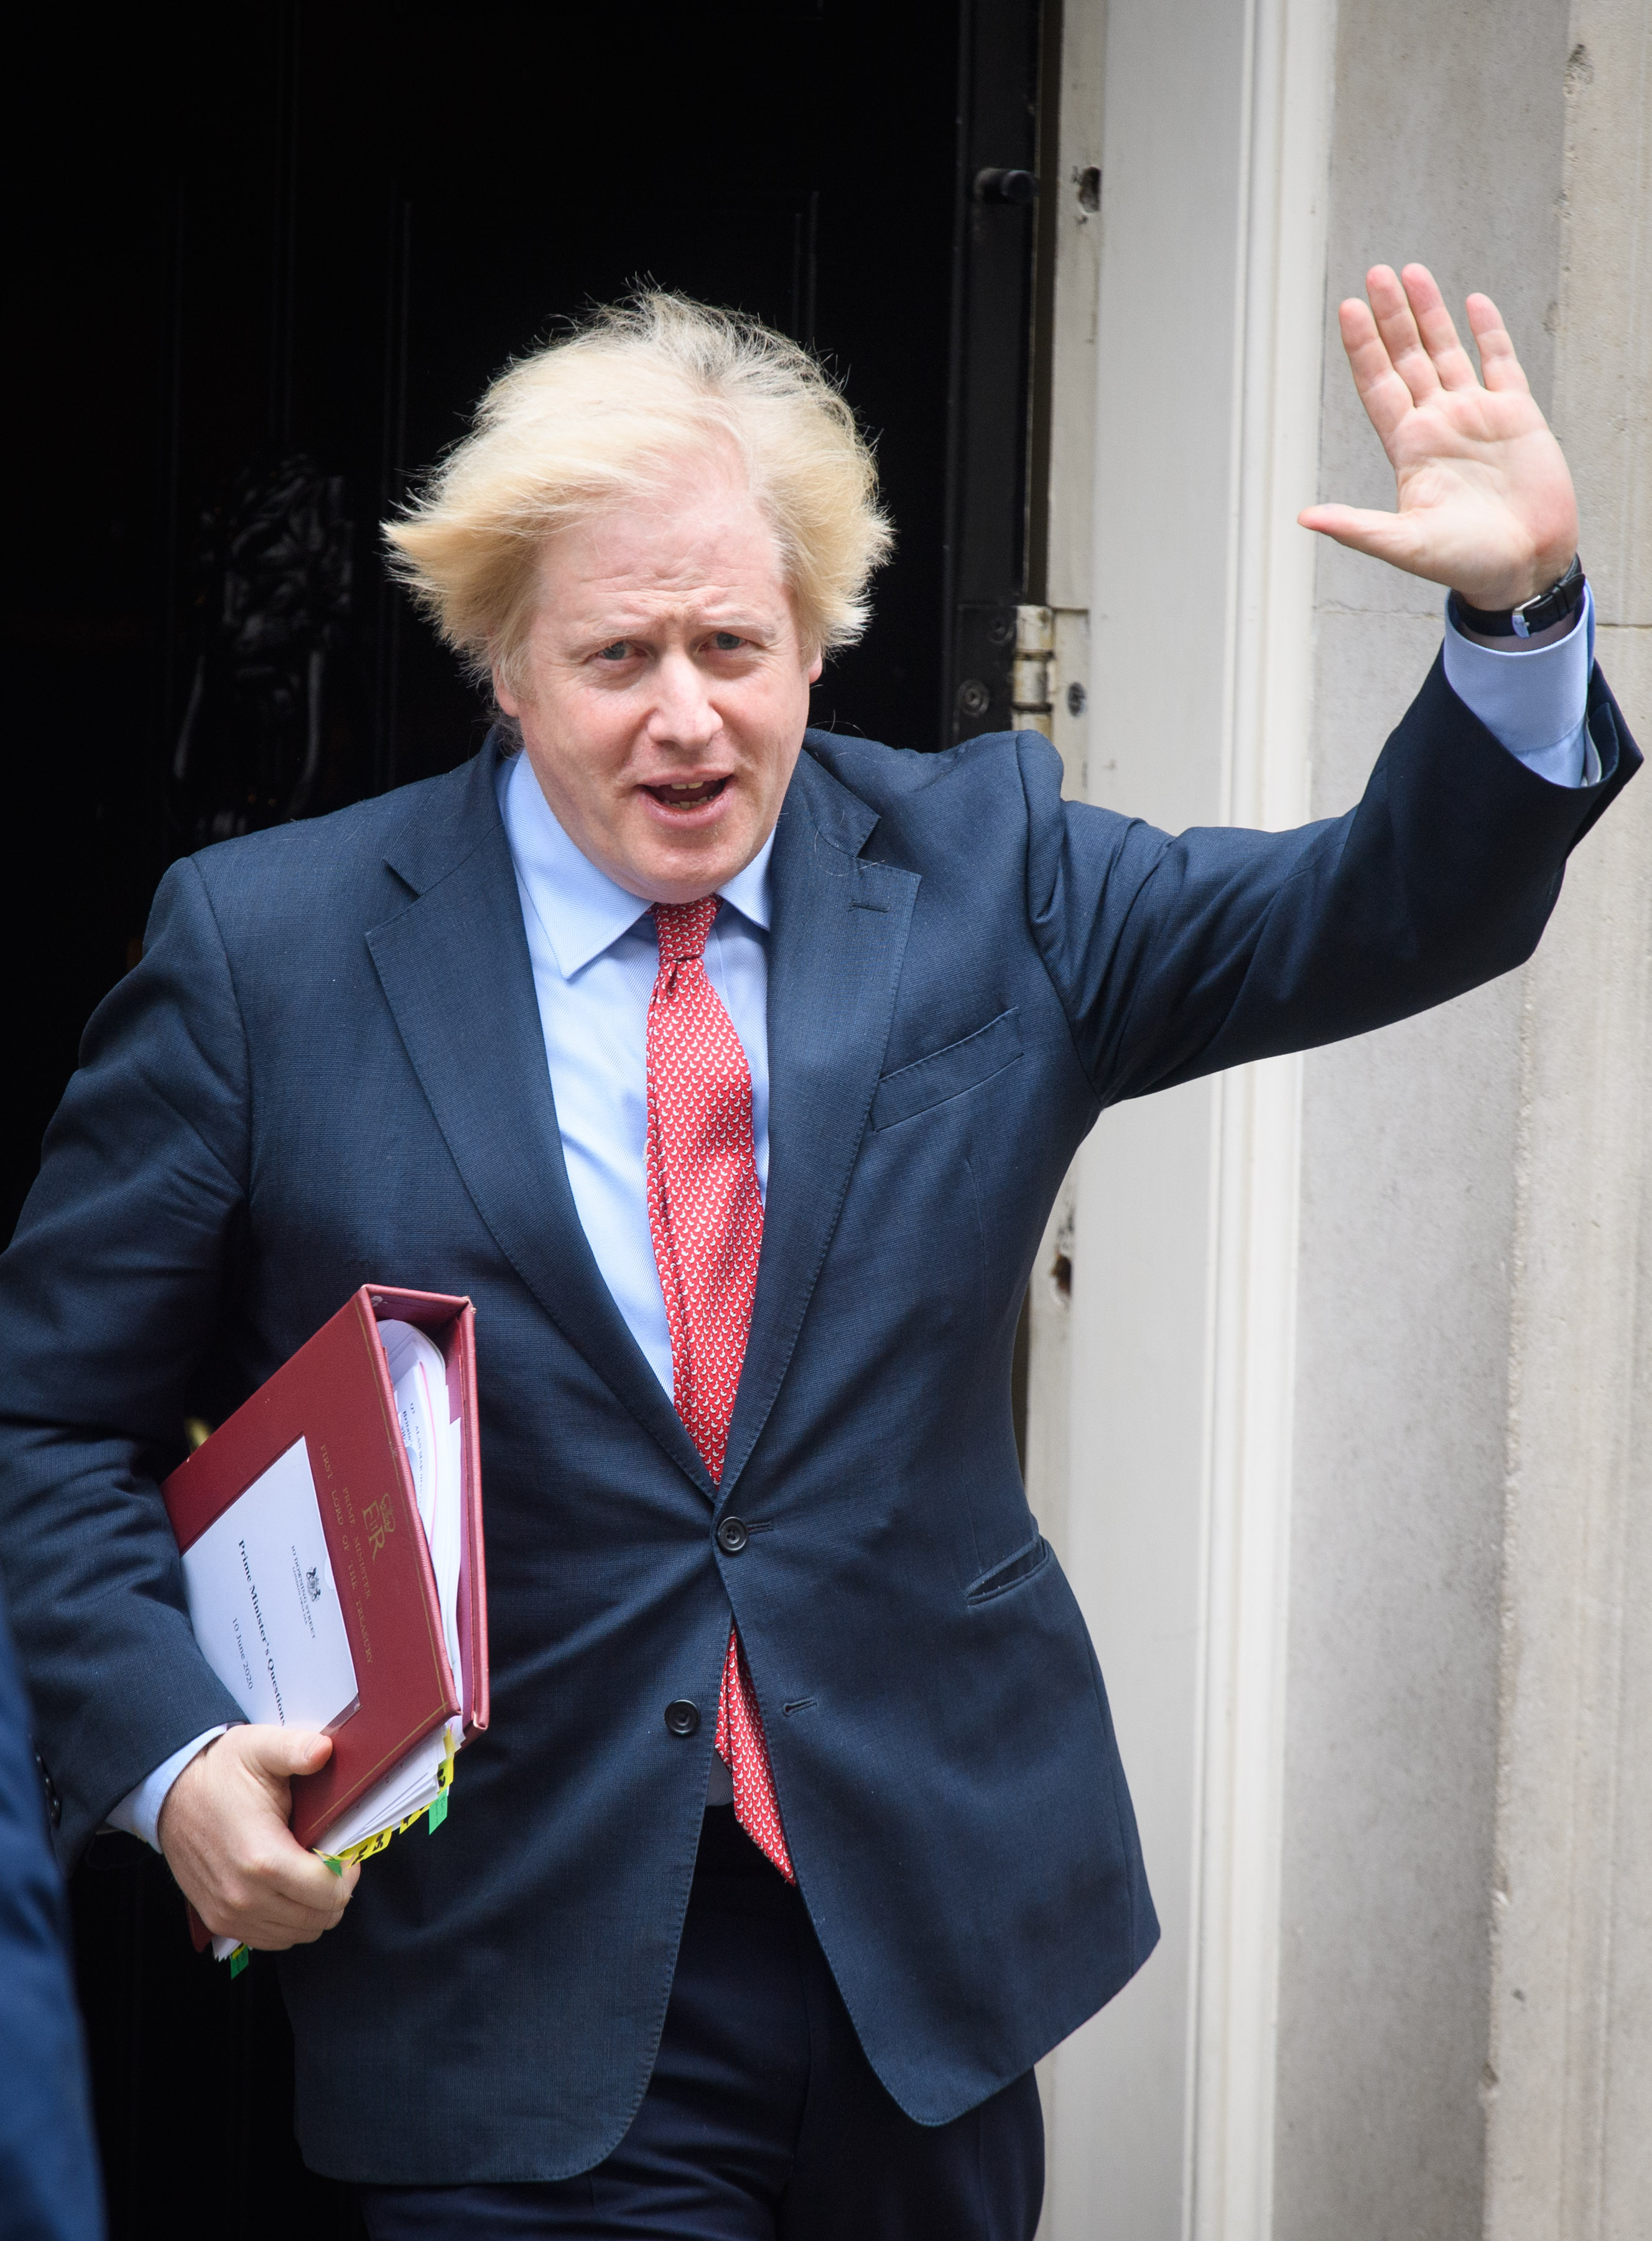 Prime Minister Boris Johnson departs 10 Downing Street, in Westminster, London, to attend Prime Minister's Questions (PMQs) at the Houses of Parliament. Picture date: Wednesday June 10, 2020. Photo credit should read: Matt Crossick/Empics